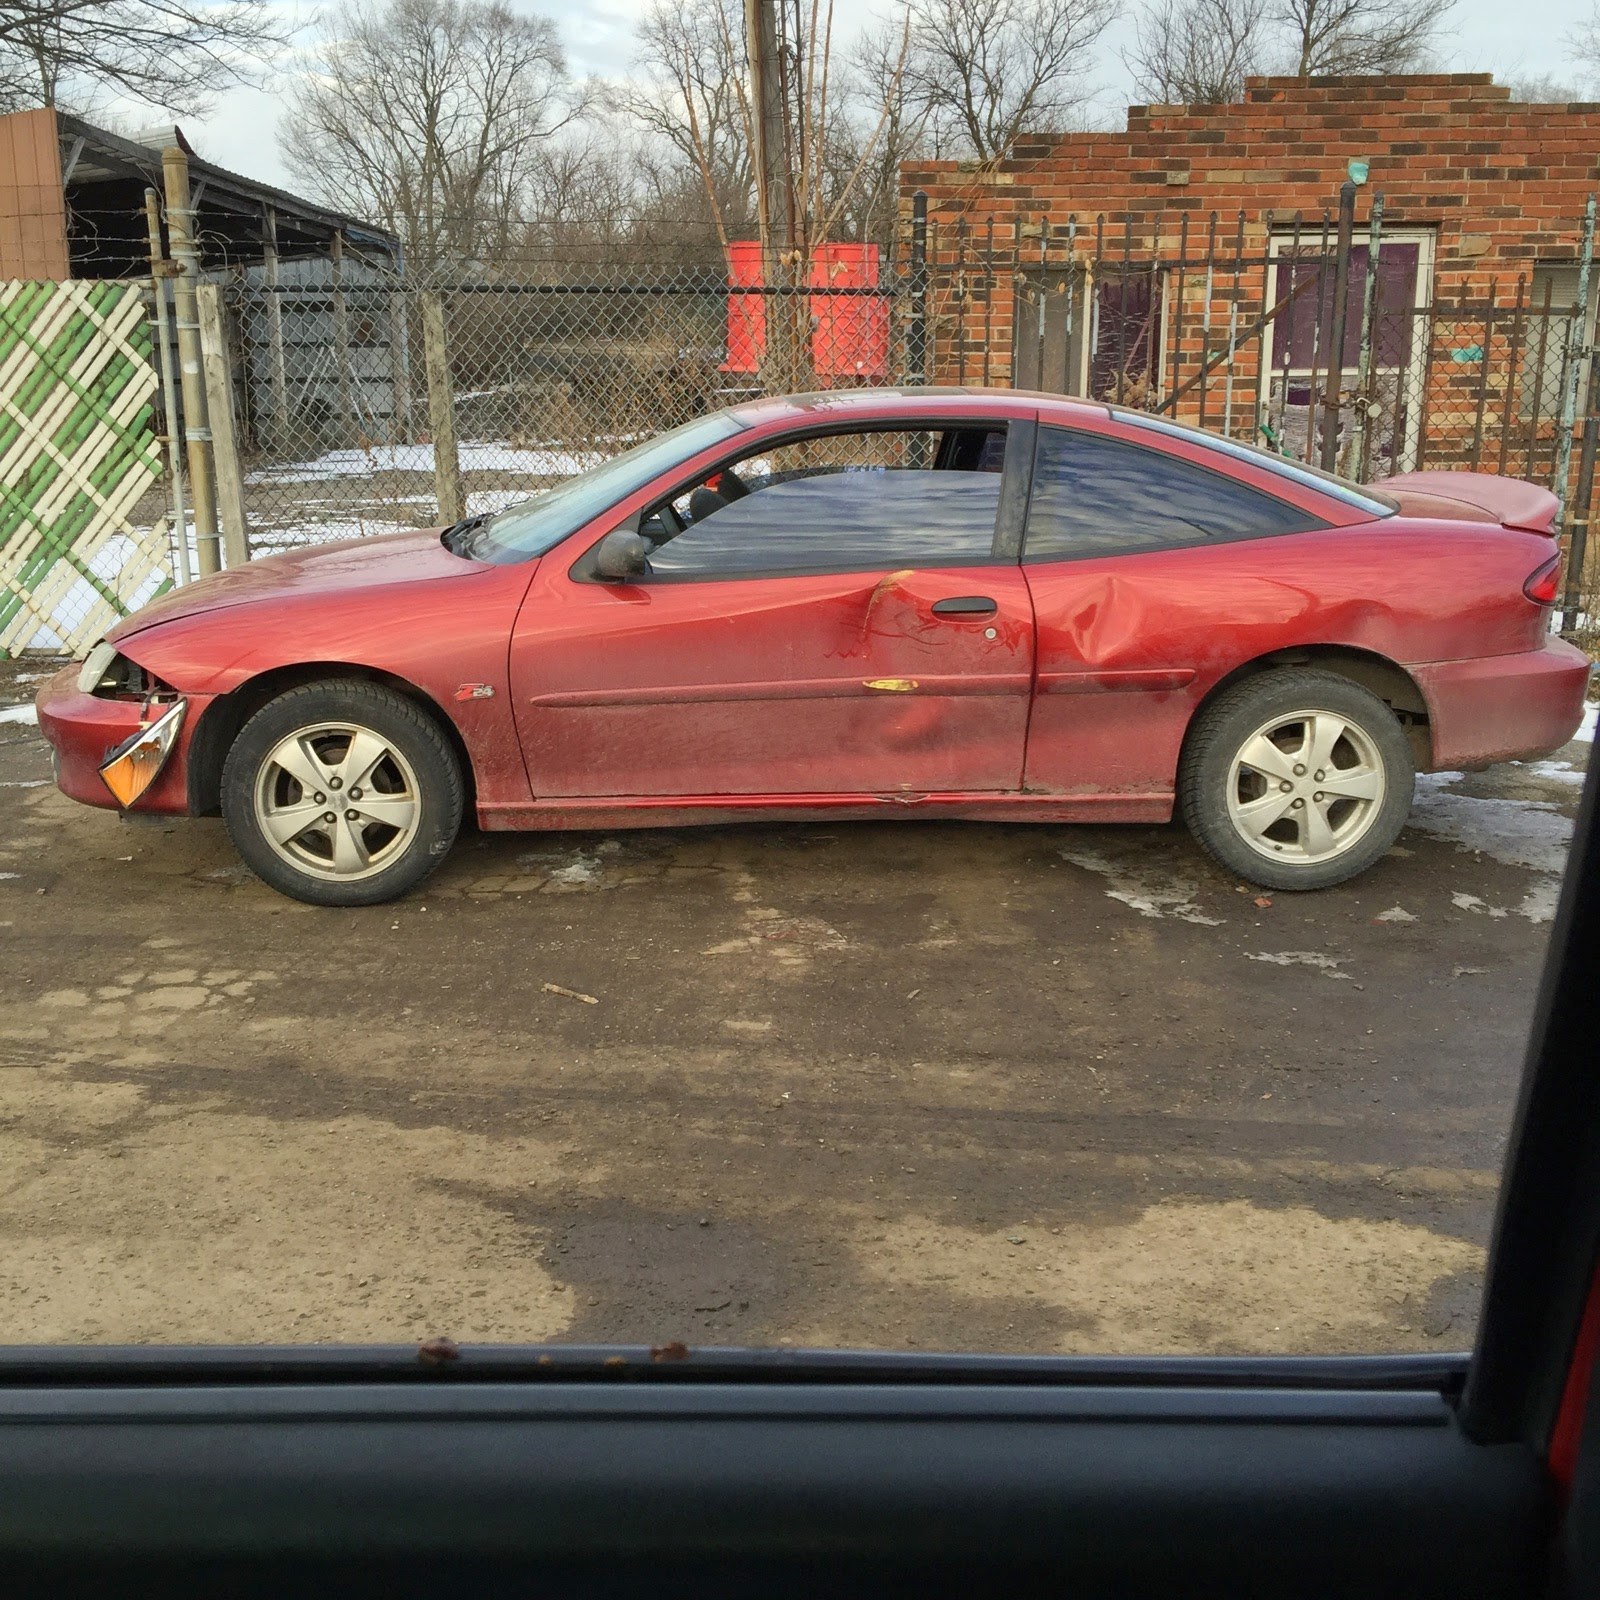 Cash for Cars Indianapolis: Junk 2001 Chevy Cavalier